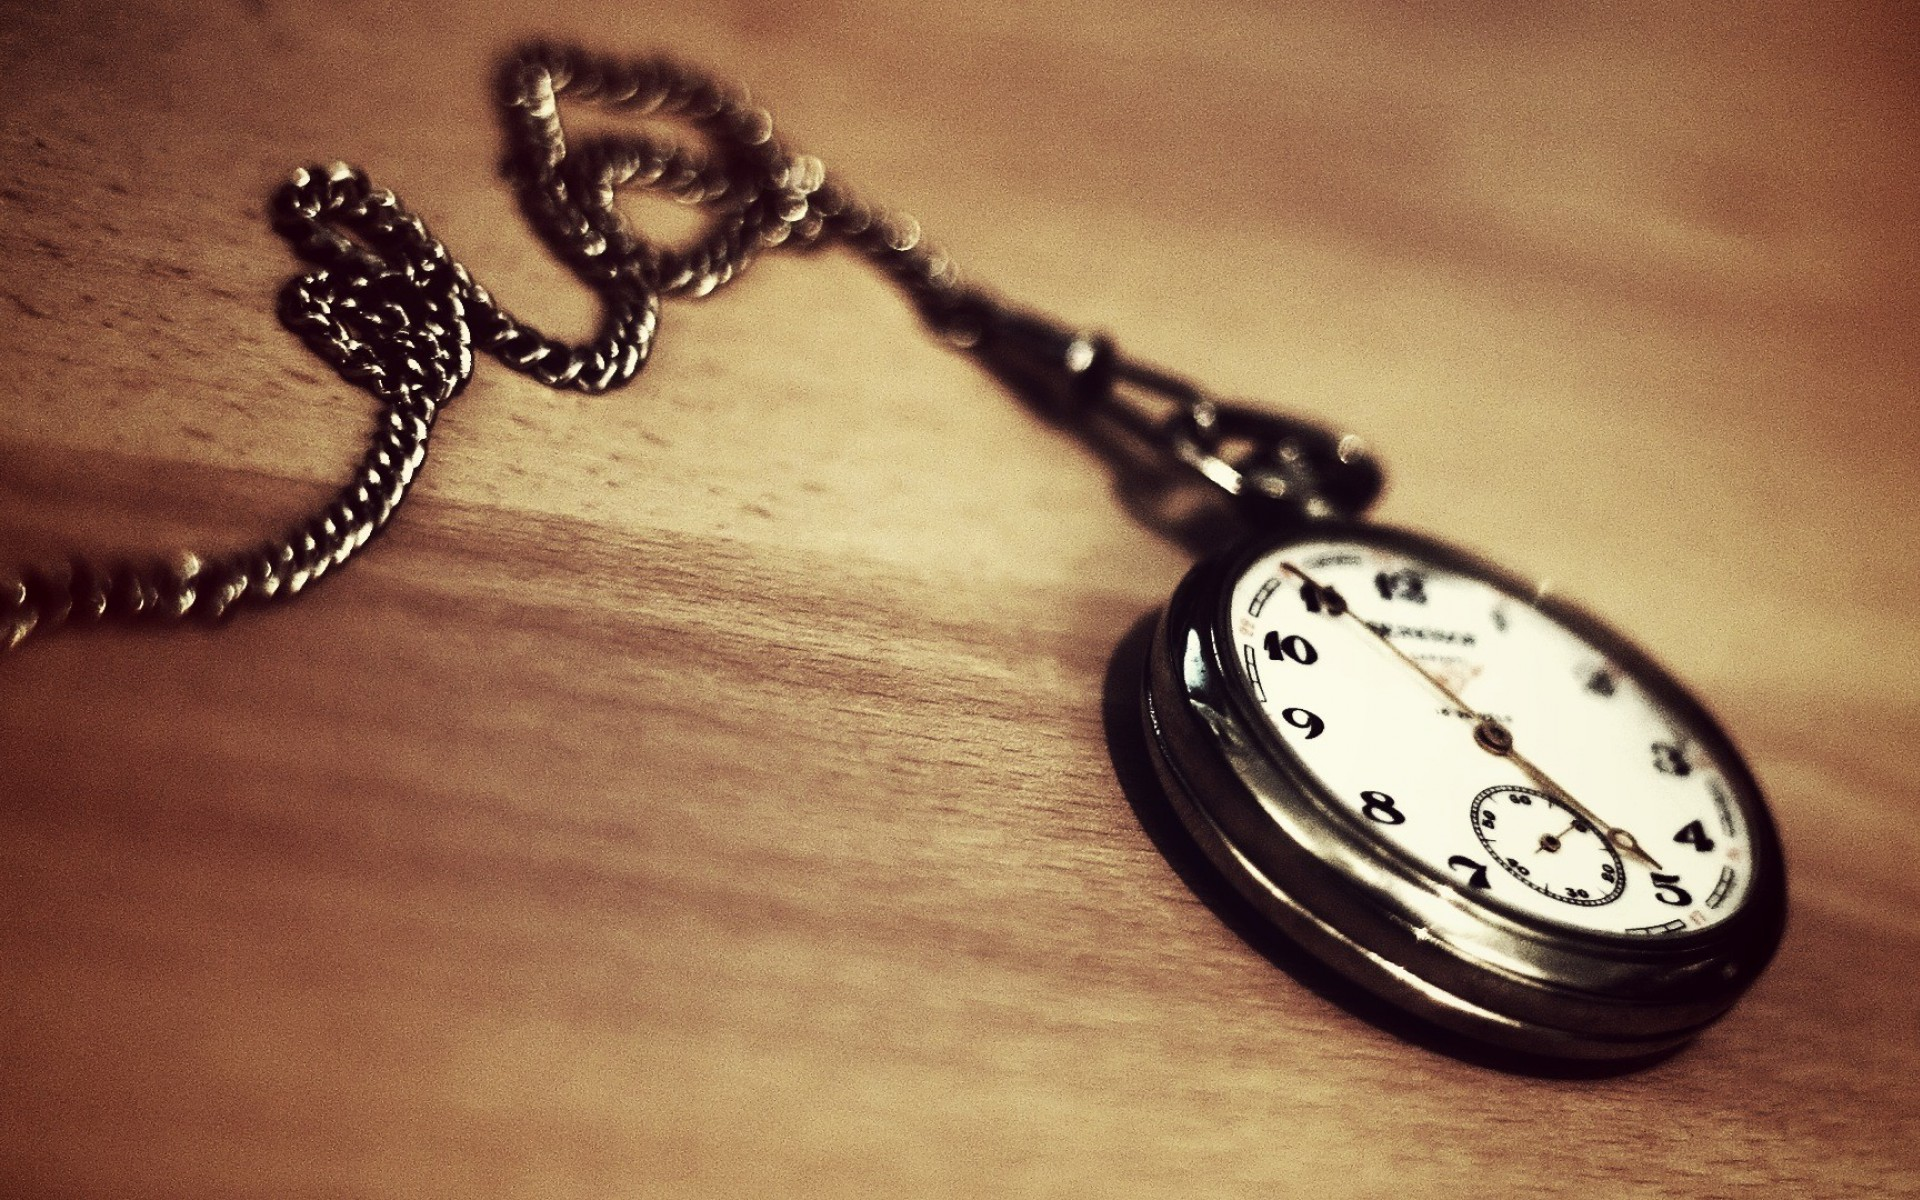 vintage pocket watch wallpaper 45081